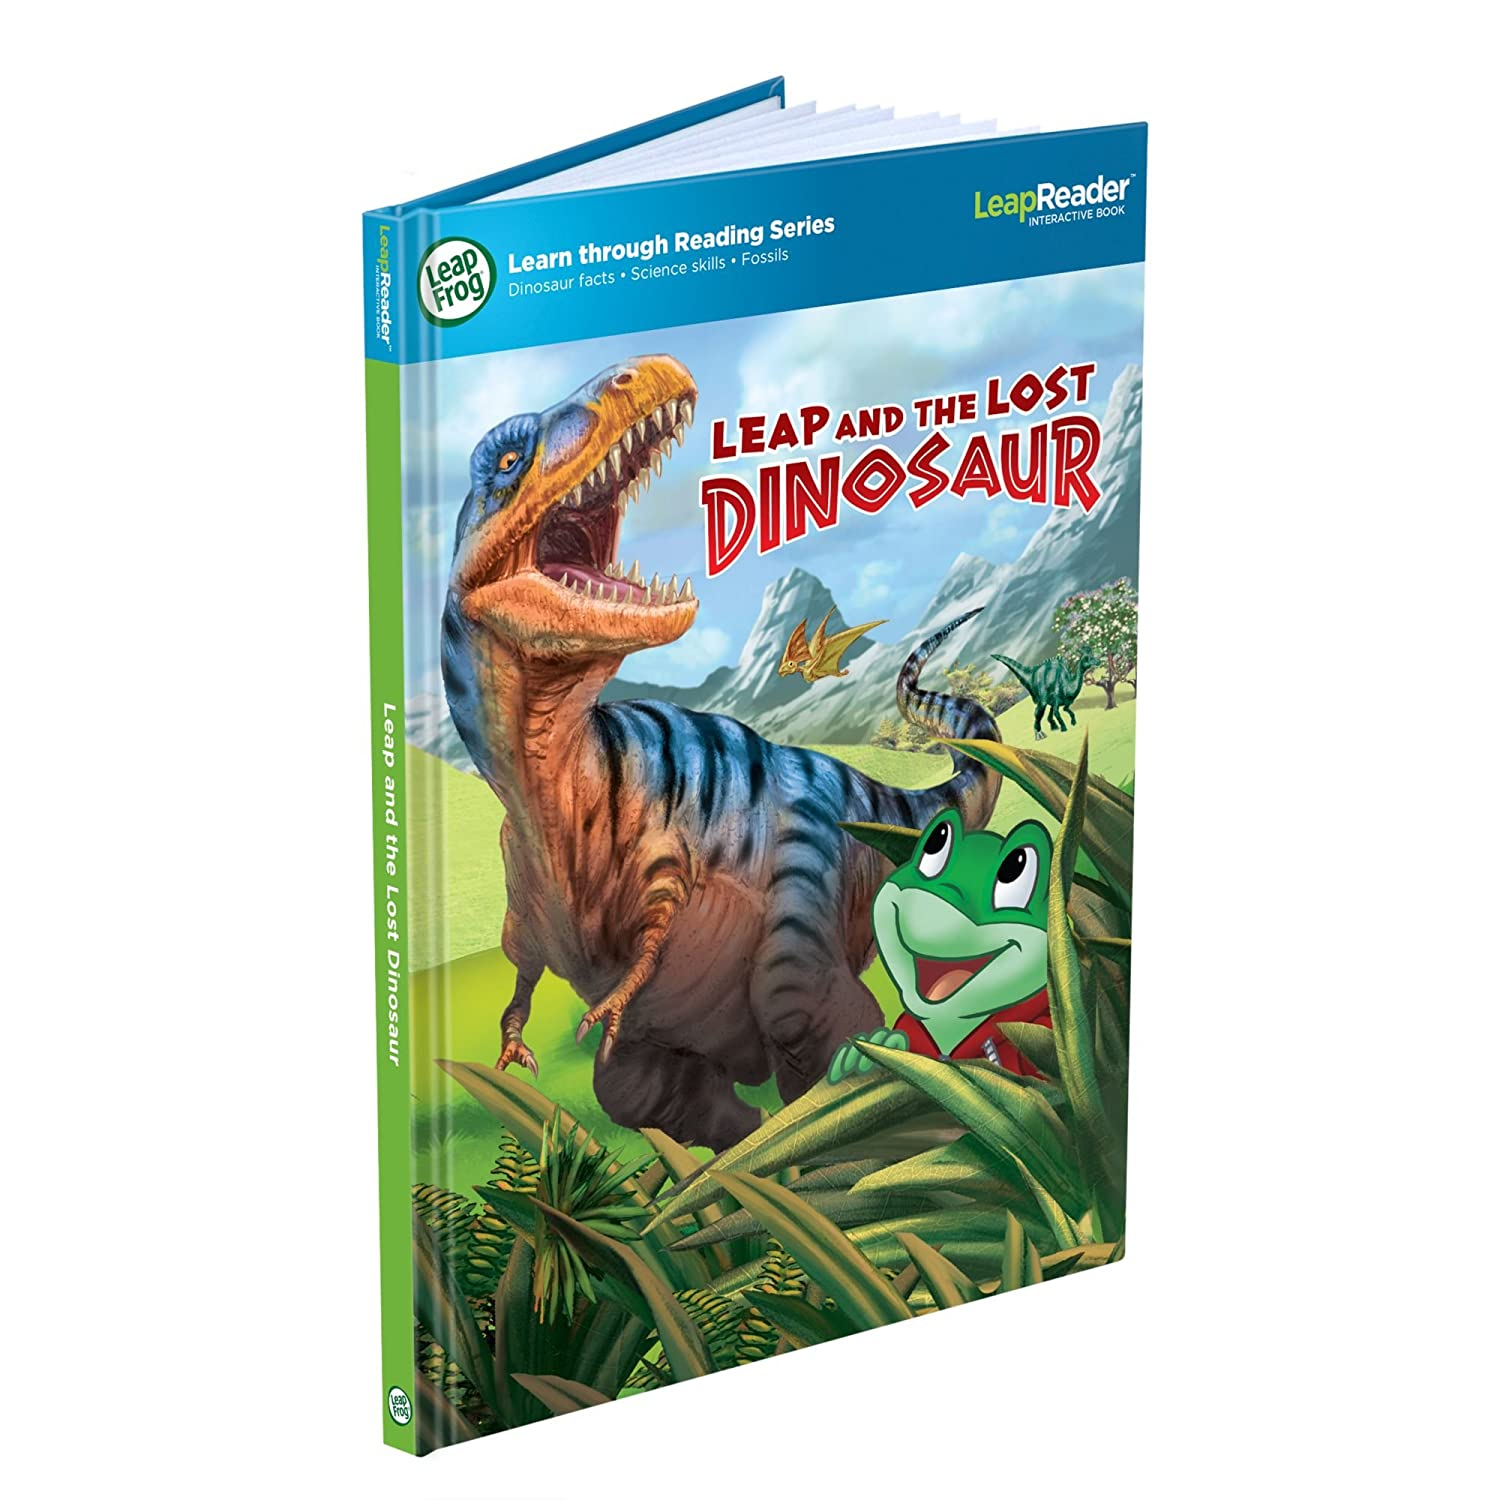 LeapFrog Tag Book - Leap and the Lost Dinosaur [UK Import] 80-21219E